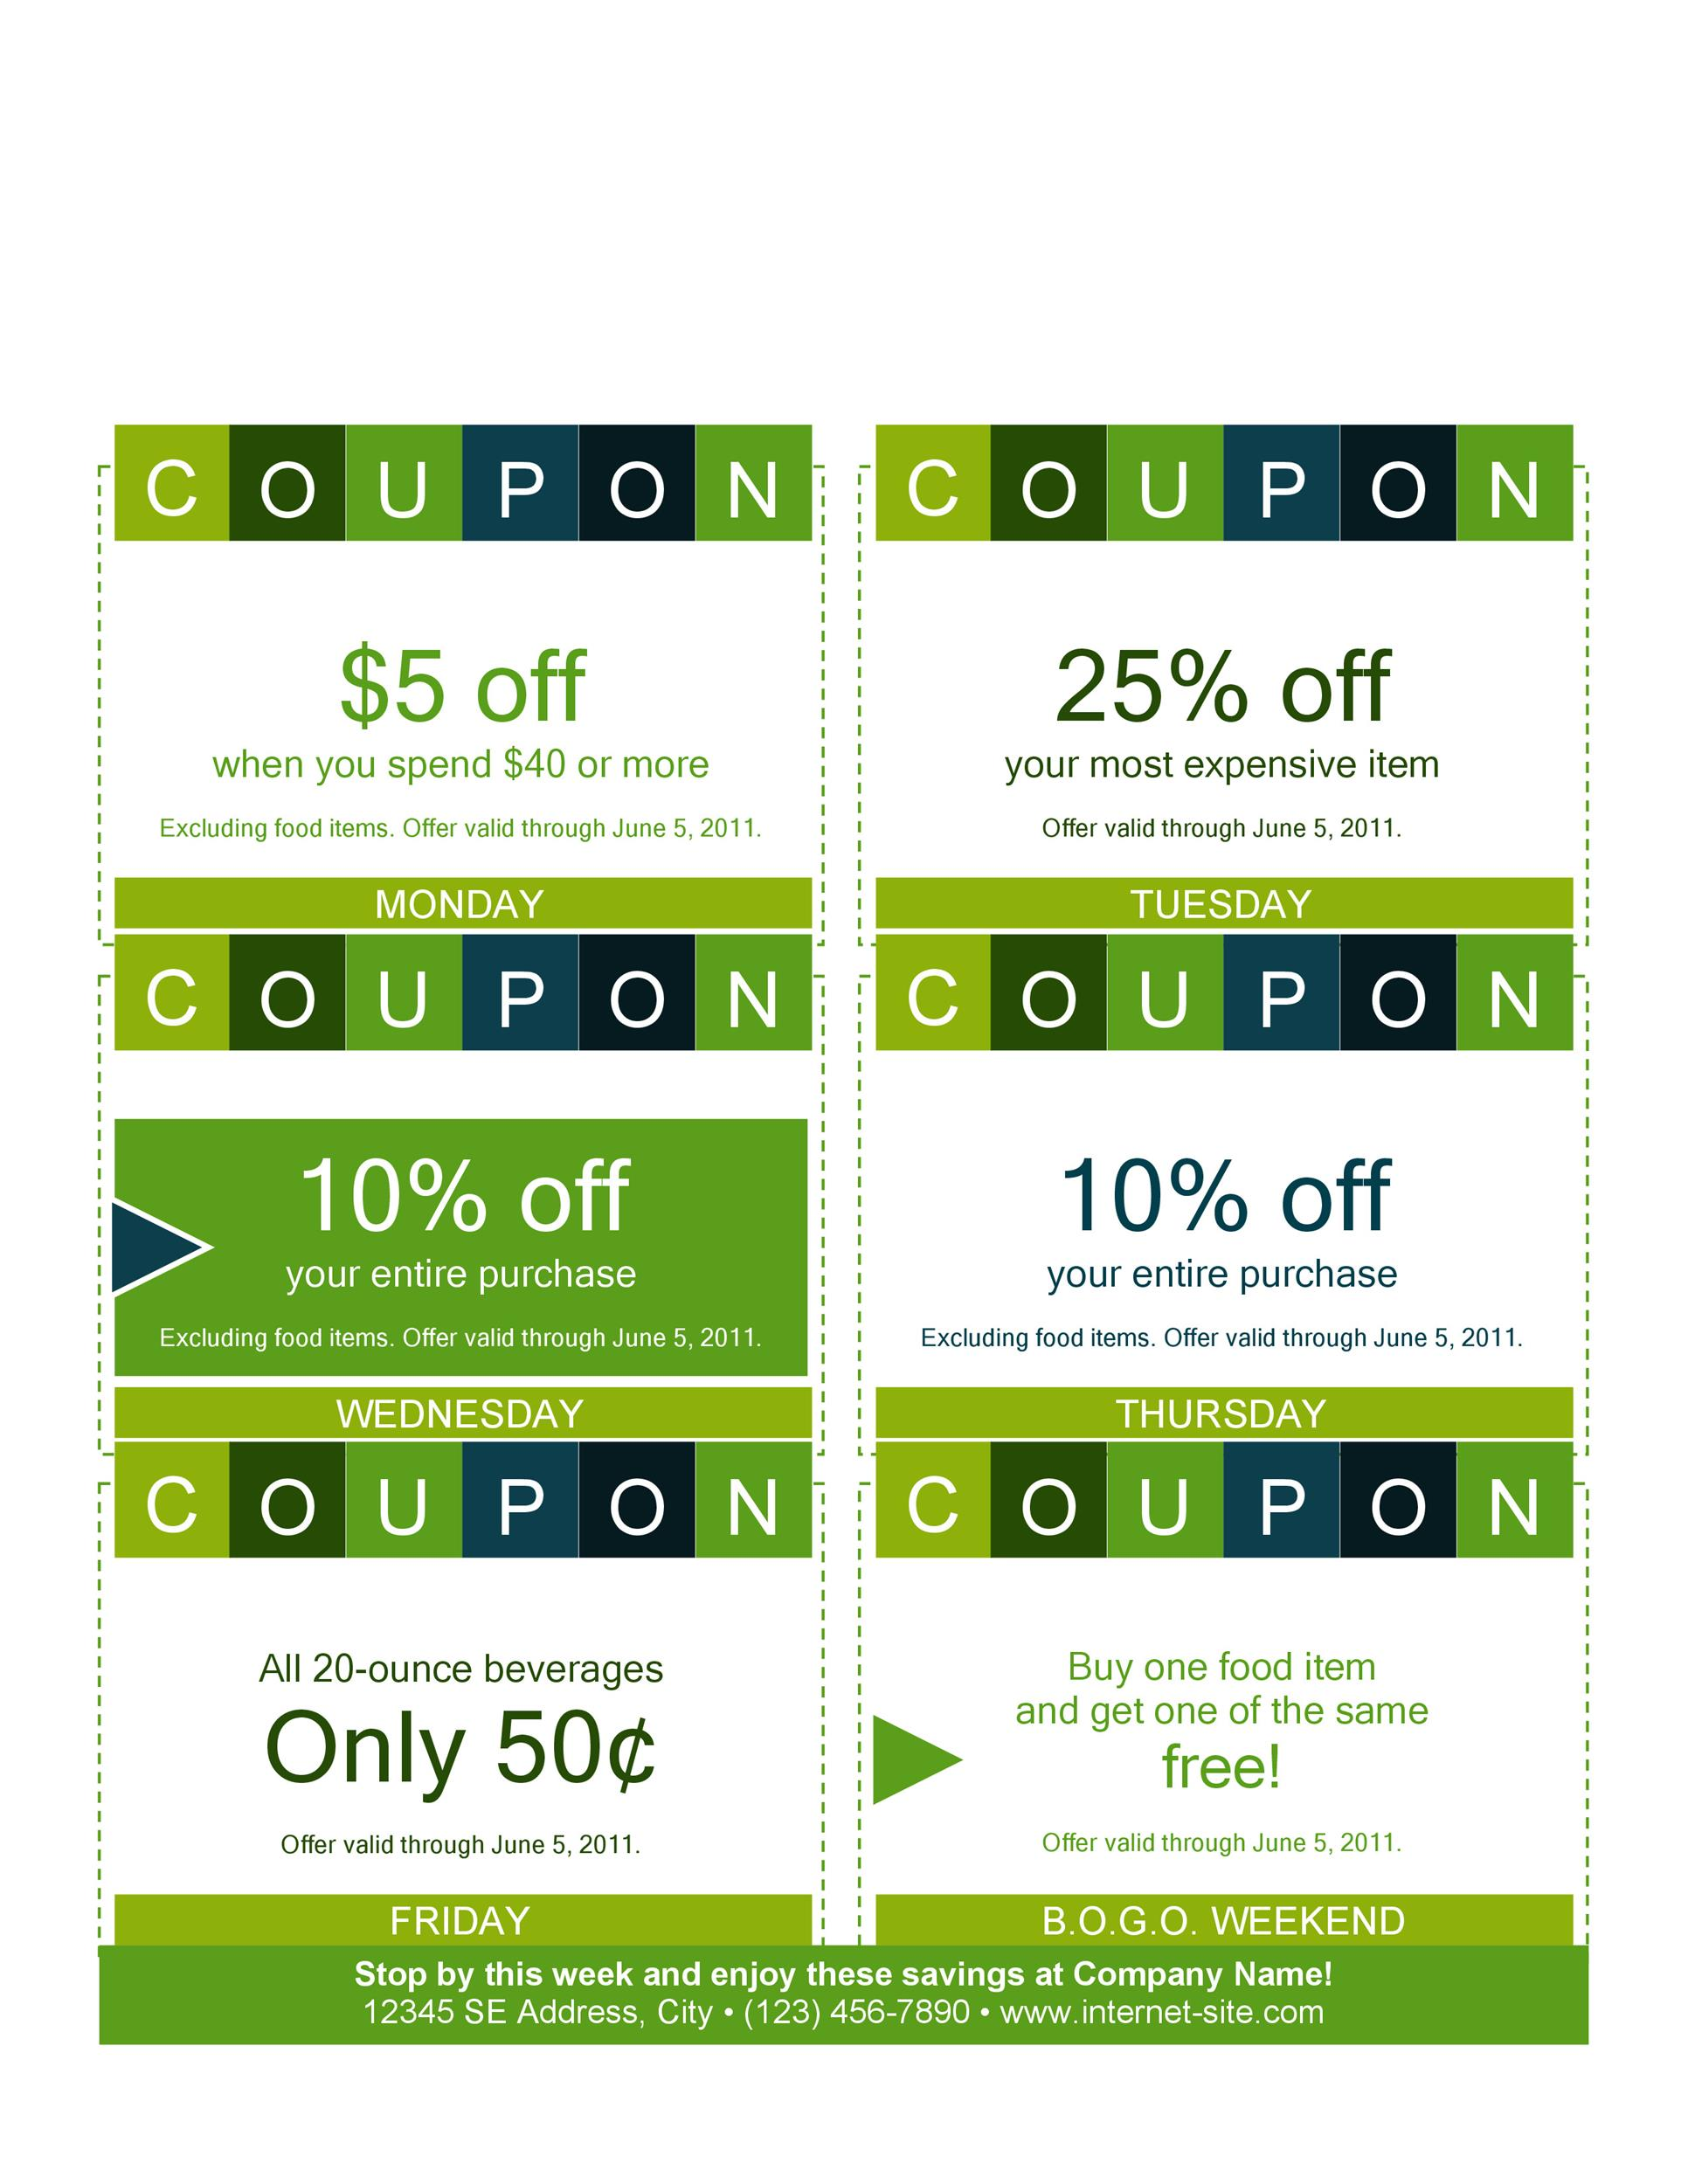 lunch coupons format - Onwebioinnovate - Lunch Voucher Template